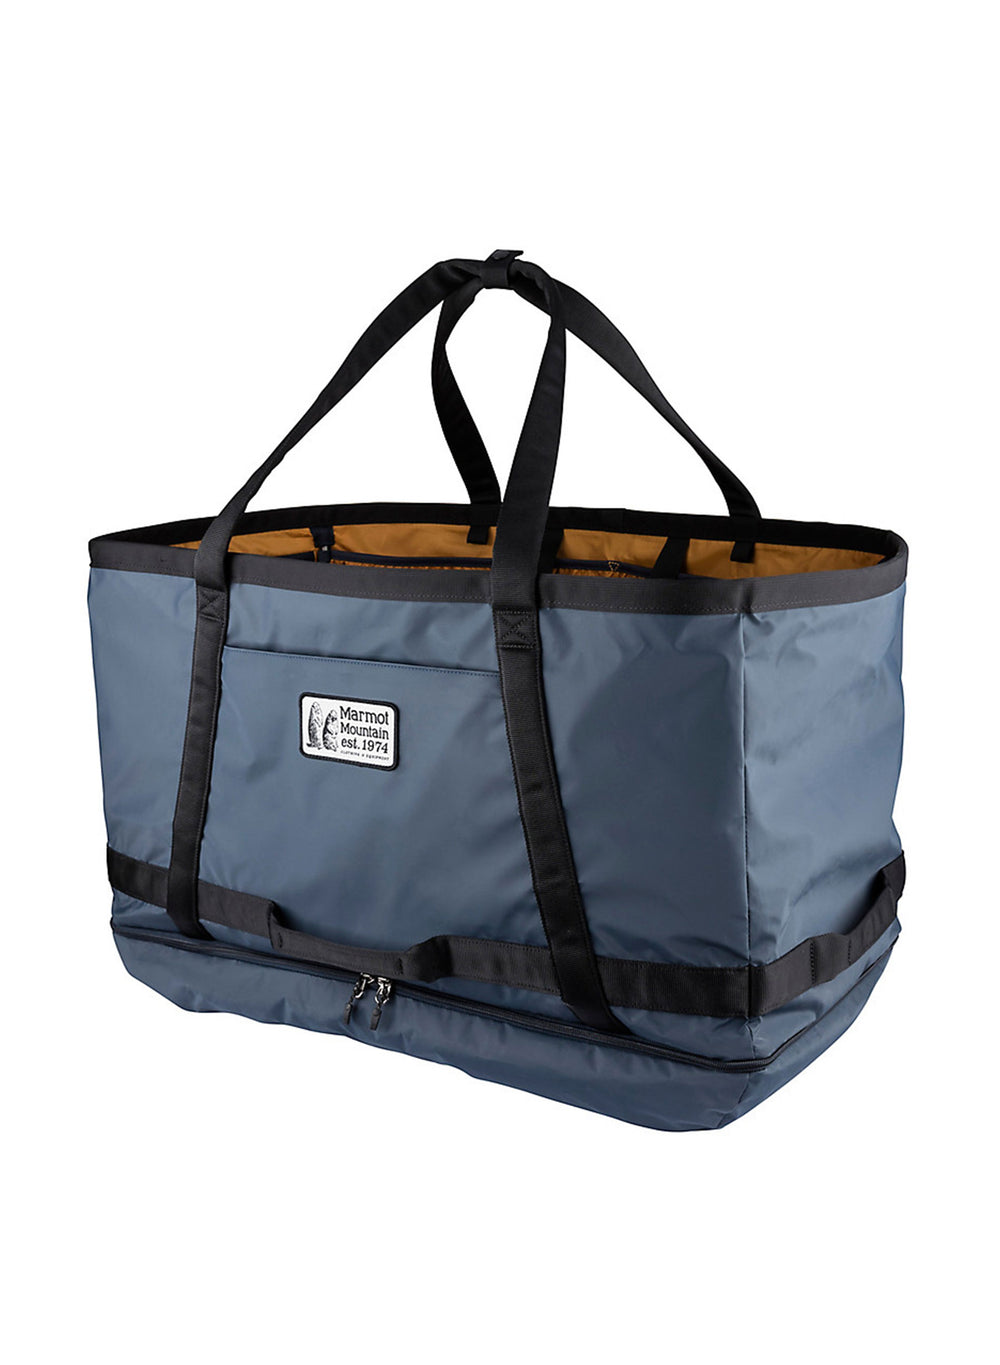 Marmot Camp Hauler Bag